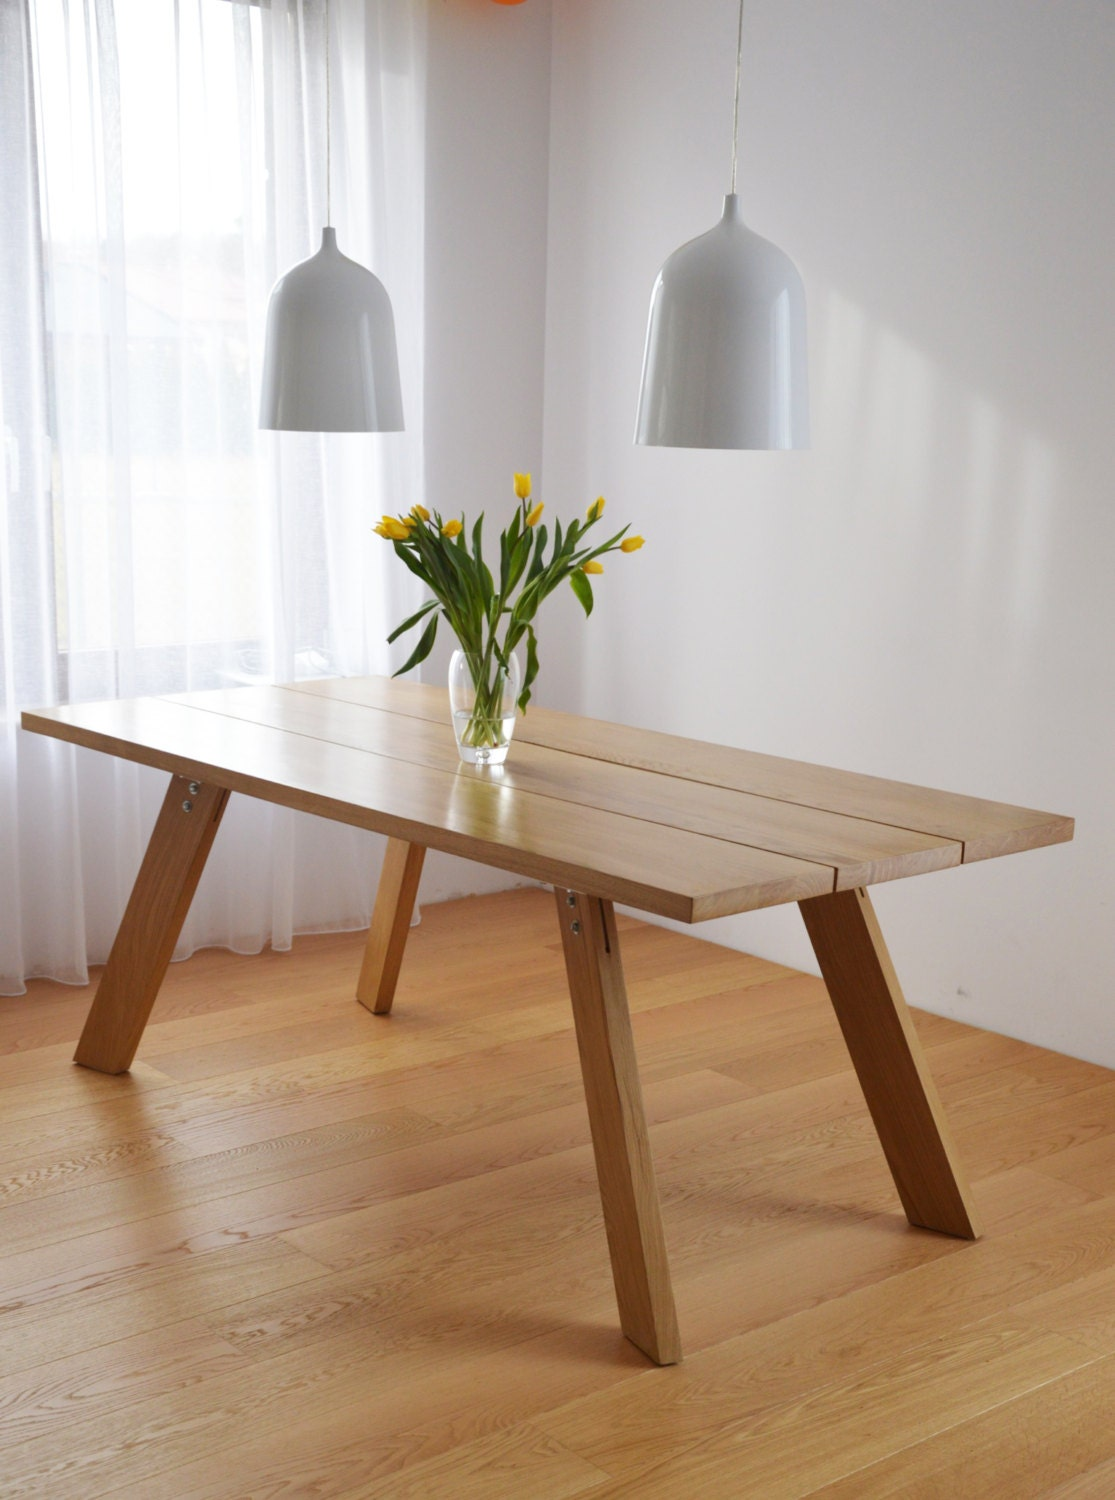 Handmade solid wood dining table contemporary design - Handmade wooden dining tables ...